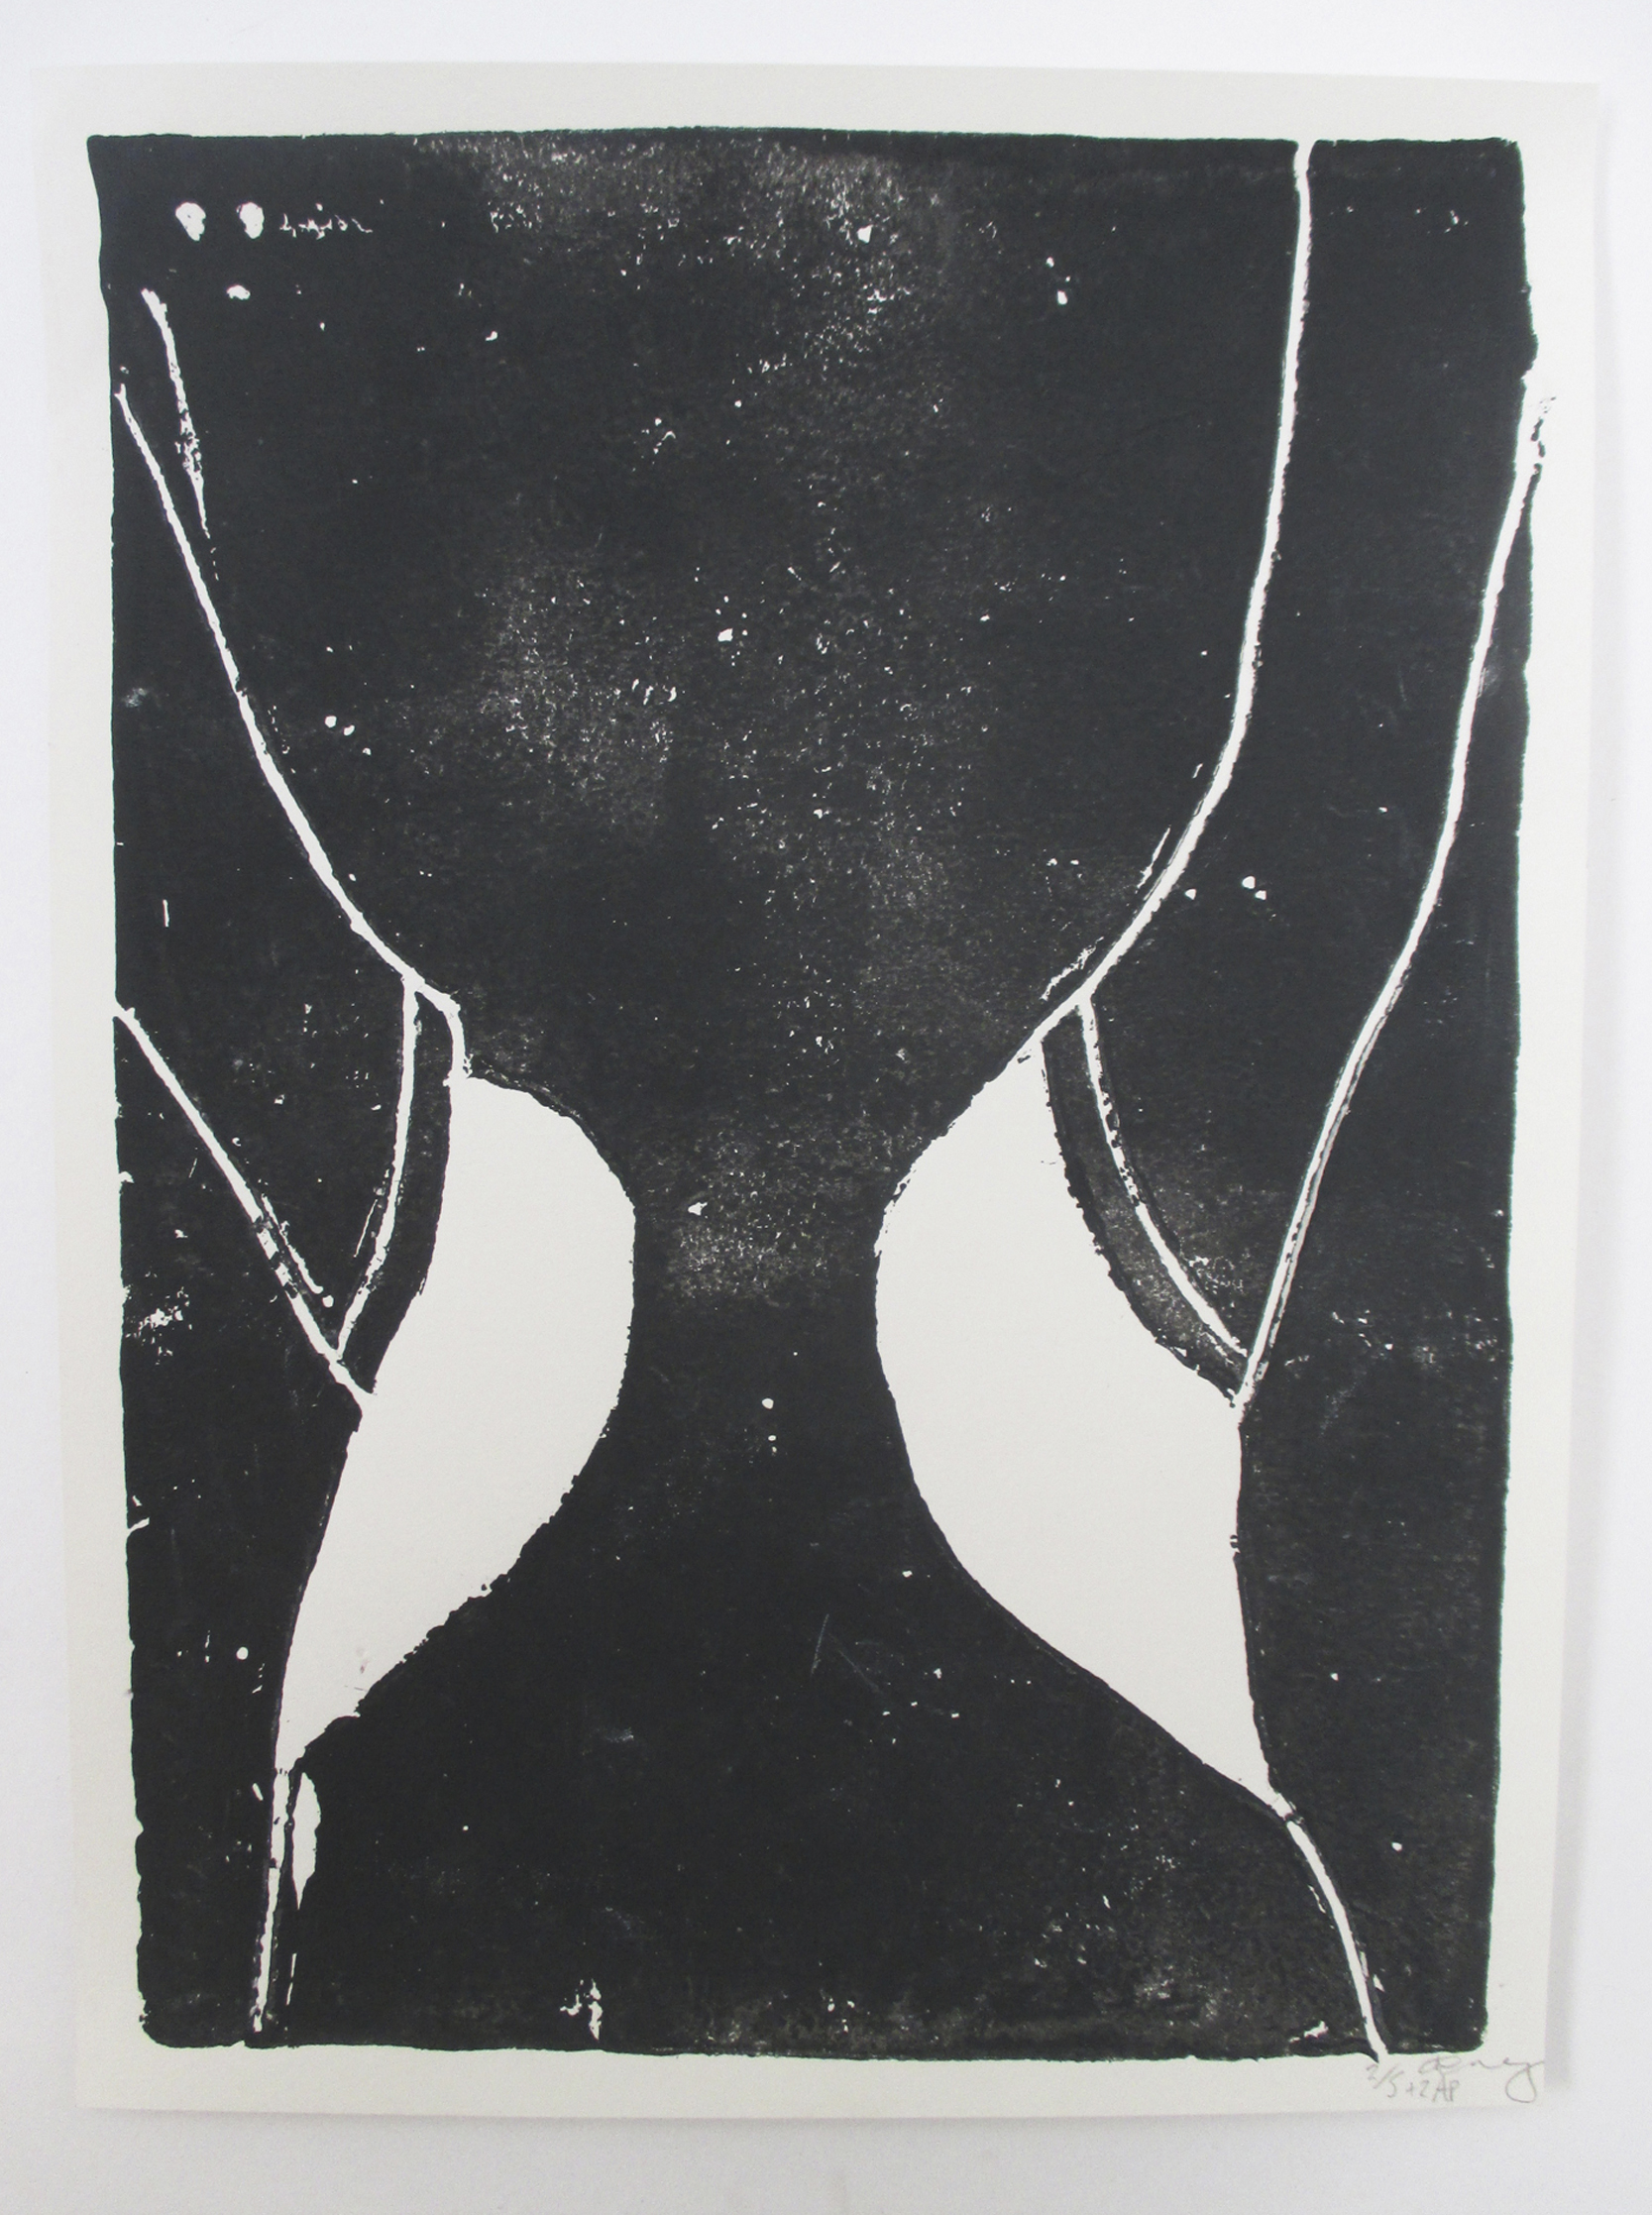 Pull ups (negative)   Clay print on Acid free Ken Cartridge 190gsm  23cm x 32cm  Edition of 5 +2 AP  2014